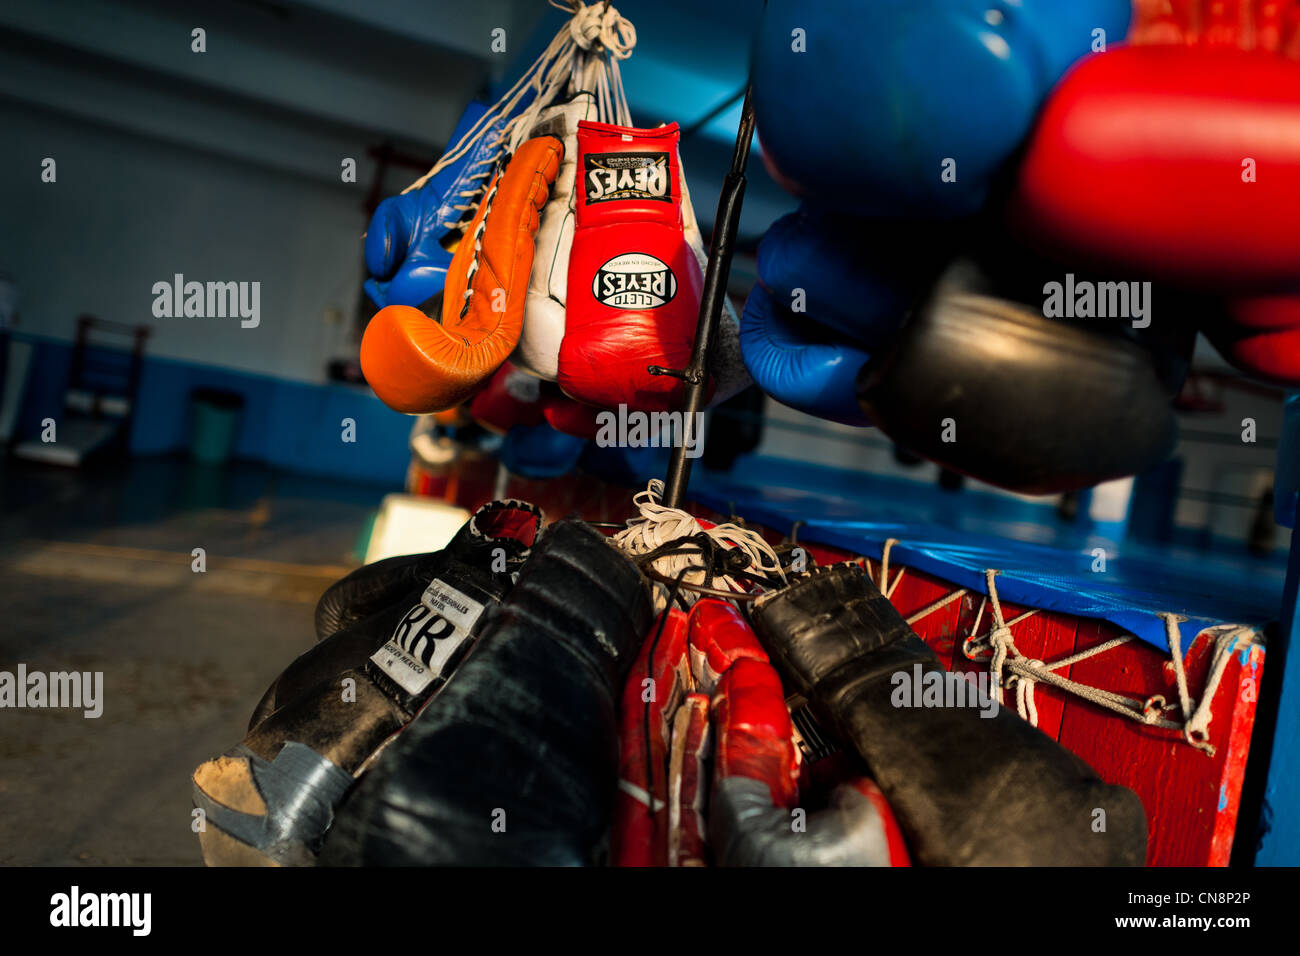 Colorful boxing gloves hung off a rack in the boxing gym in Mexico City, Mexico. - Stock Image